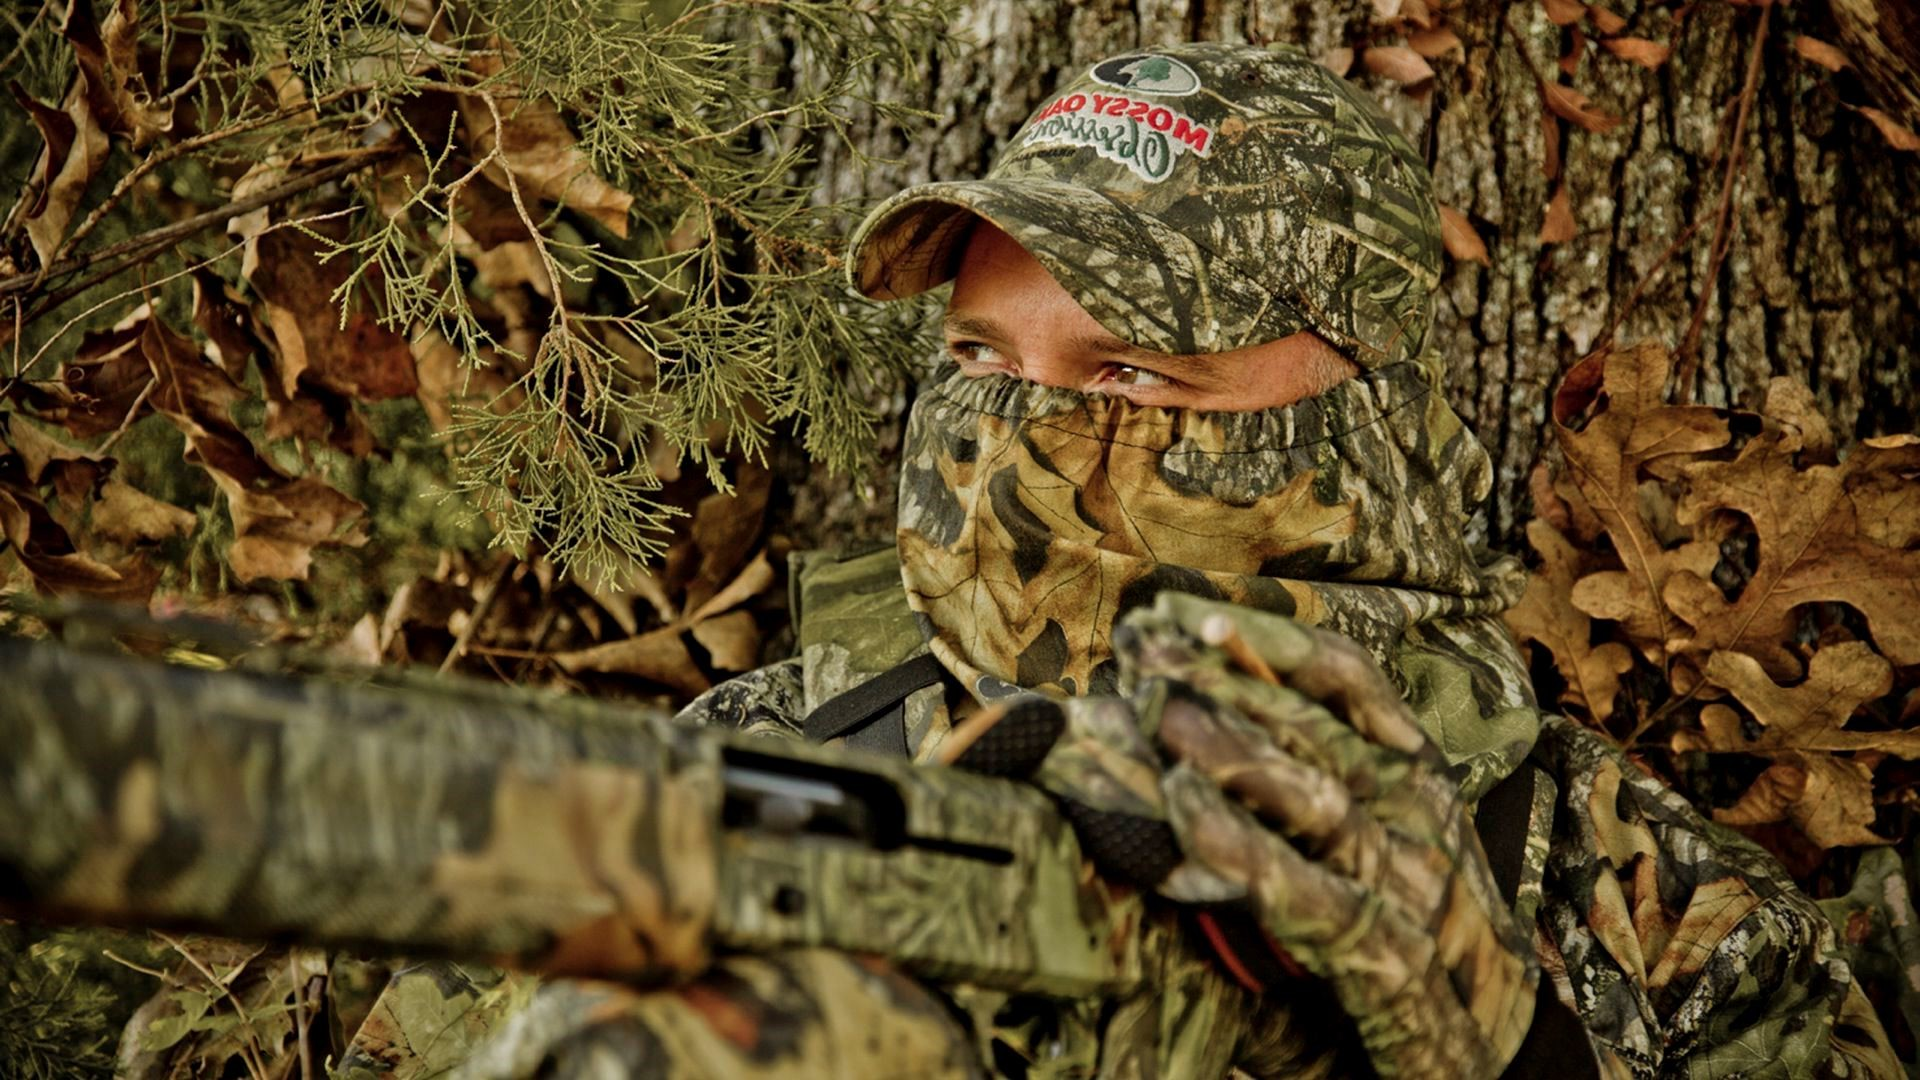 1920x1080 Realtree Xtra Camo Wallpaper Wallpapers Pink Camo Mossy Oak Obsession